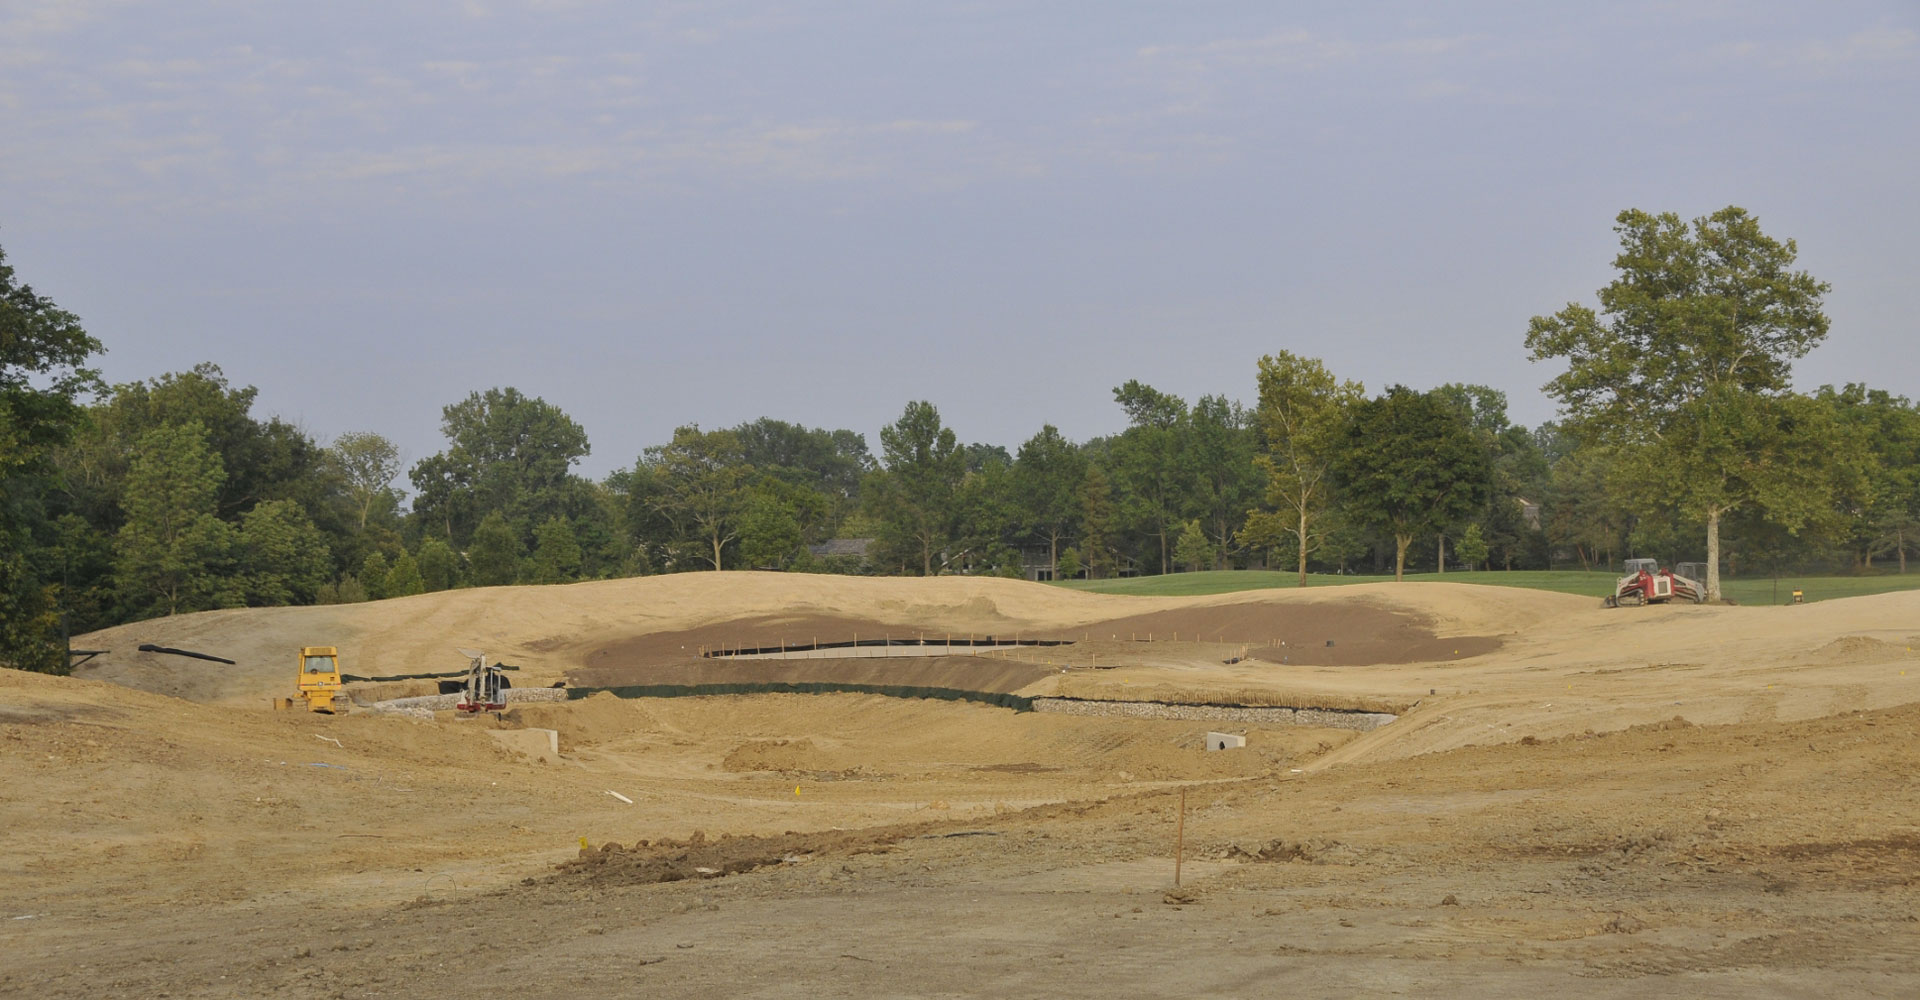 Muirfield golf course before renovations